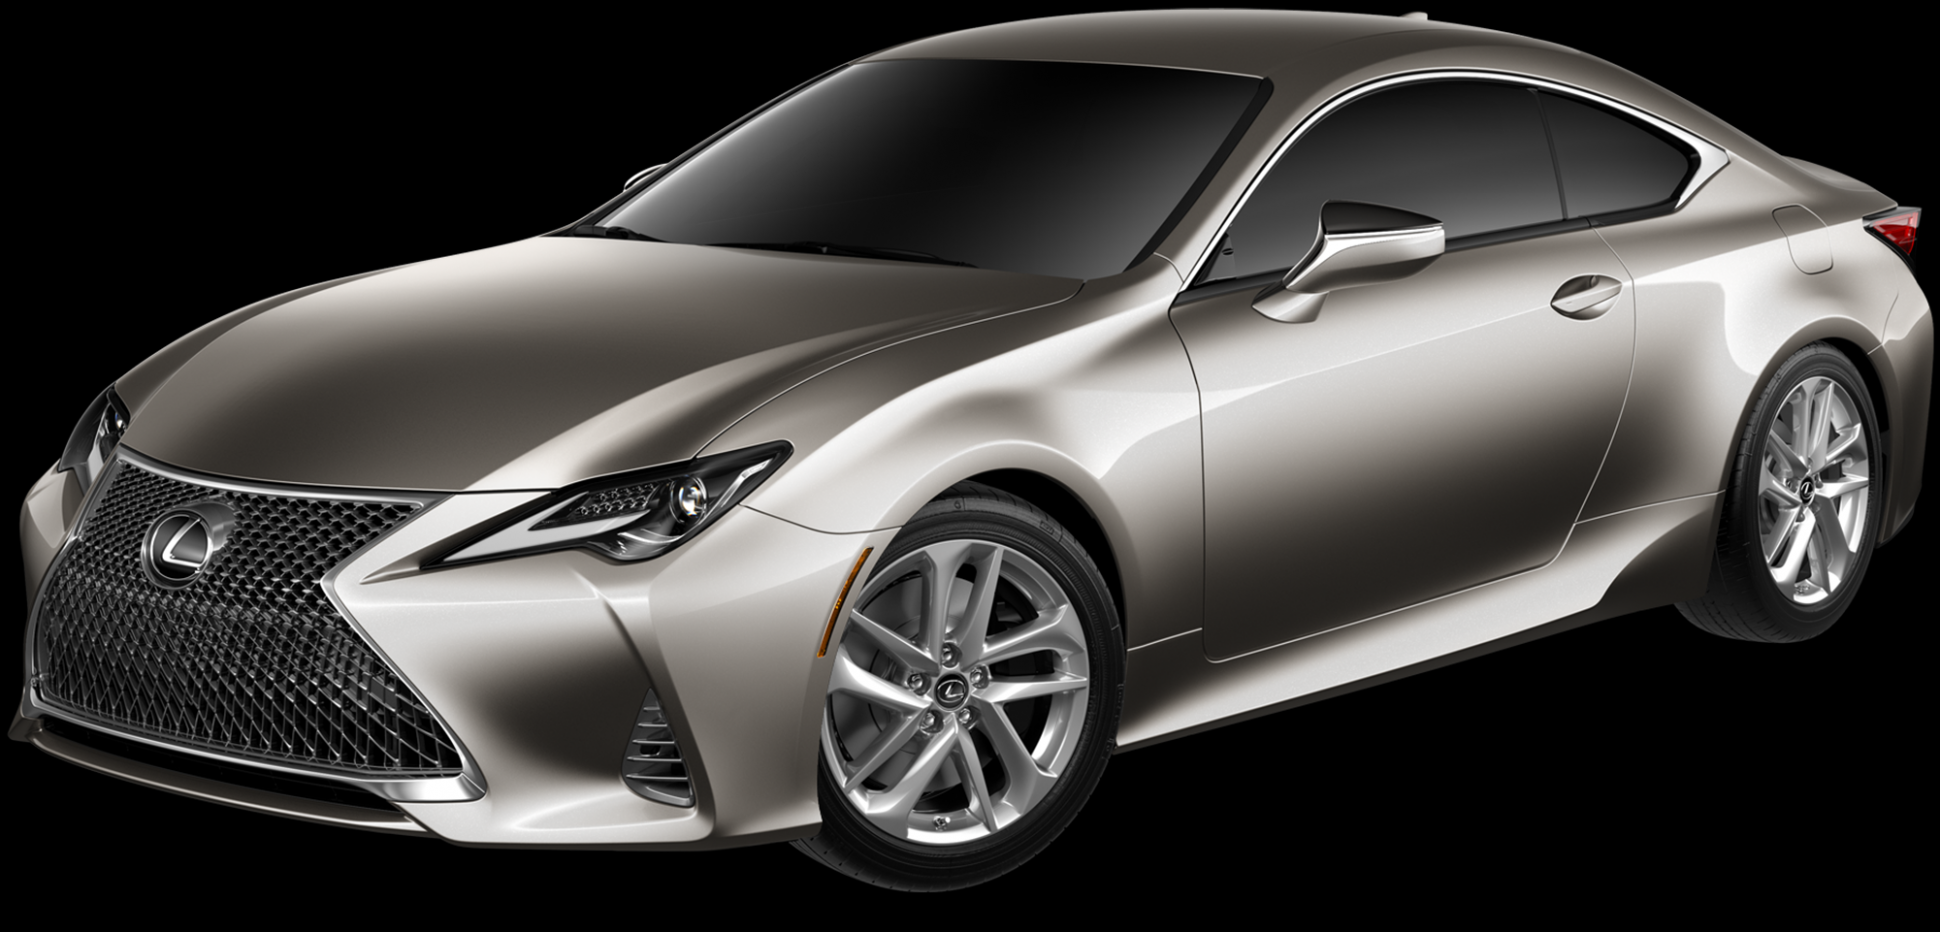 9 Lexus RC 9 Incentives, Specials & Offers in Raleigh NC